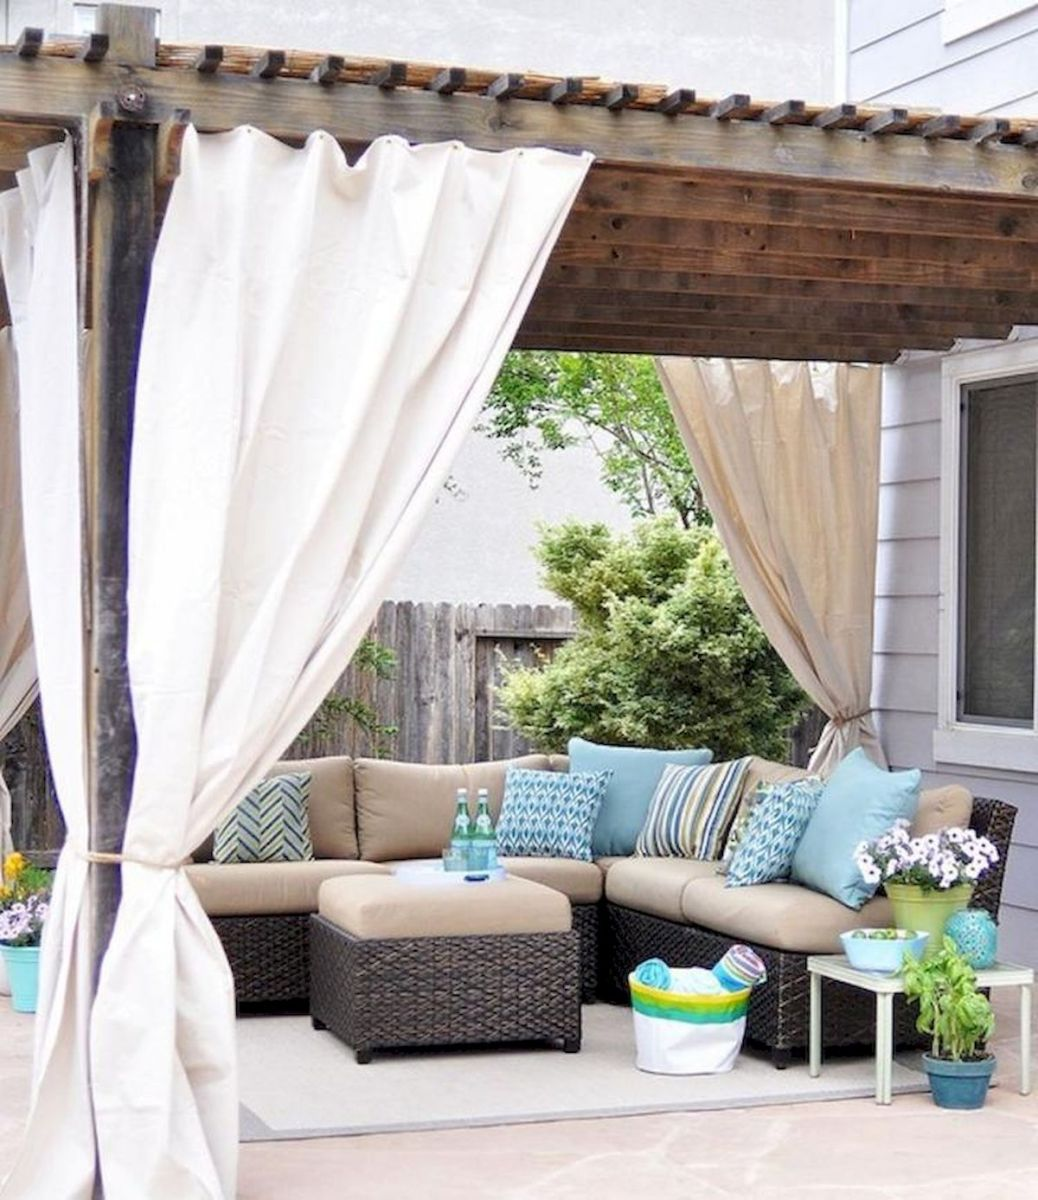 60 Awesome DIY Backyard Privacy Design and Decor Ideas (30)